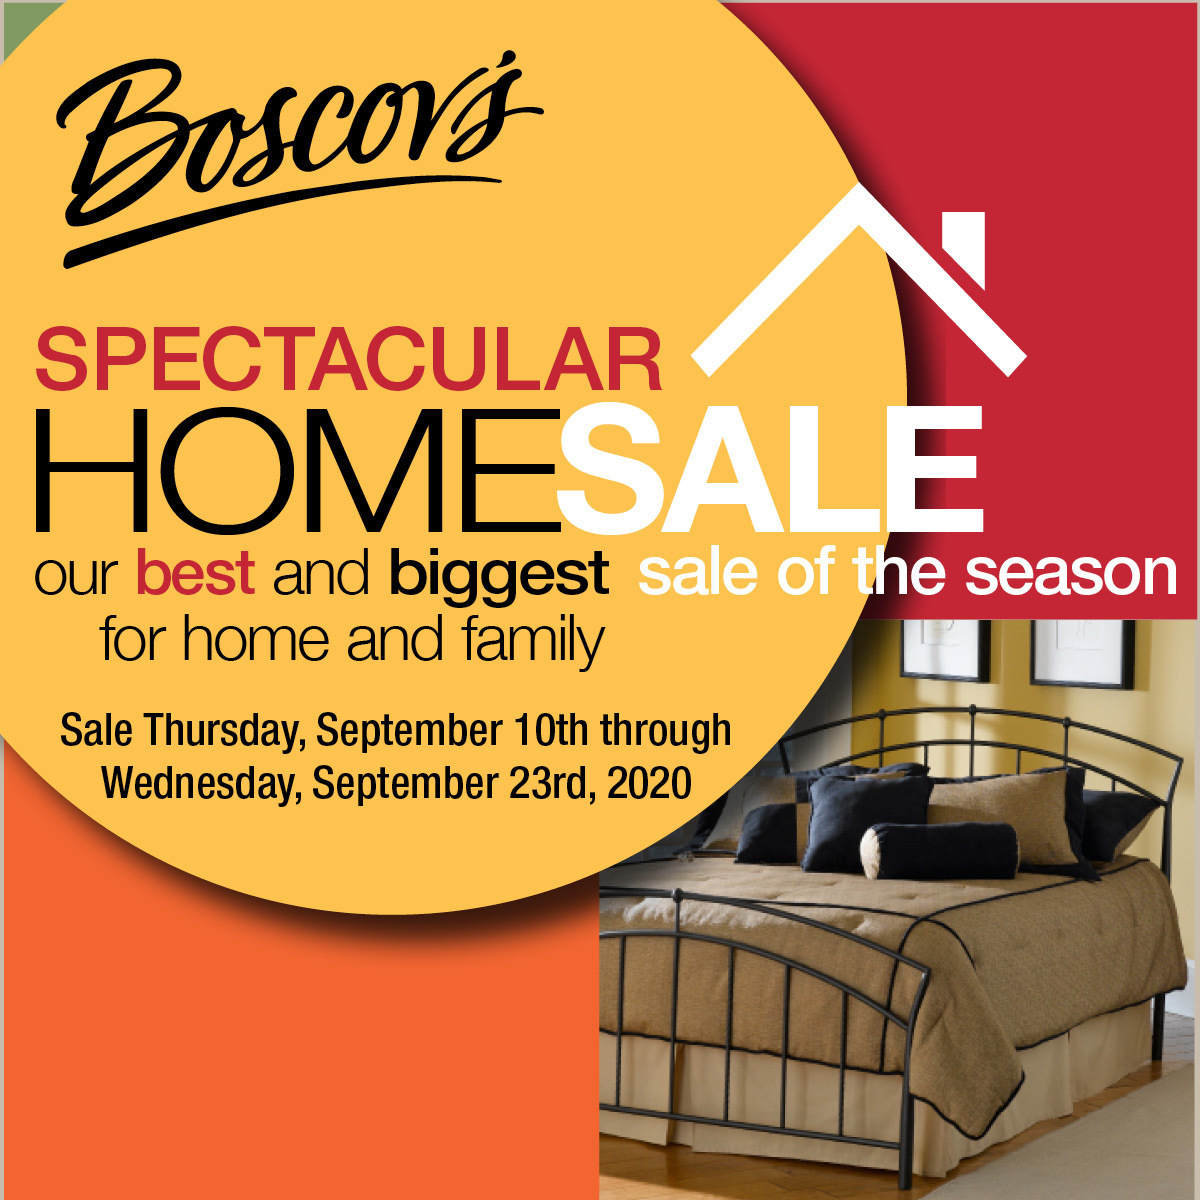 Spectacular Home Sale from Boscov's